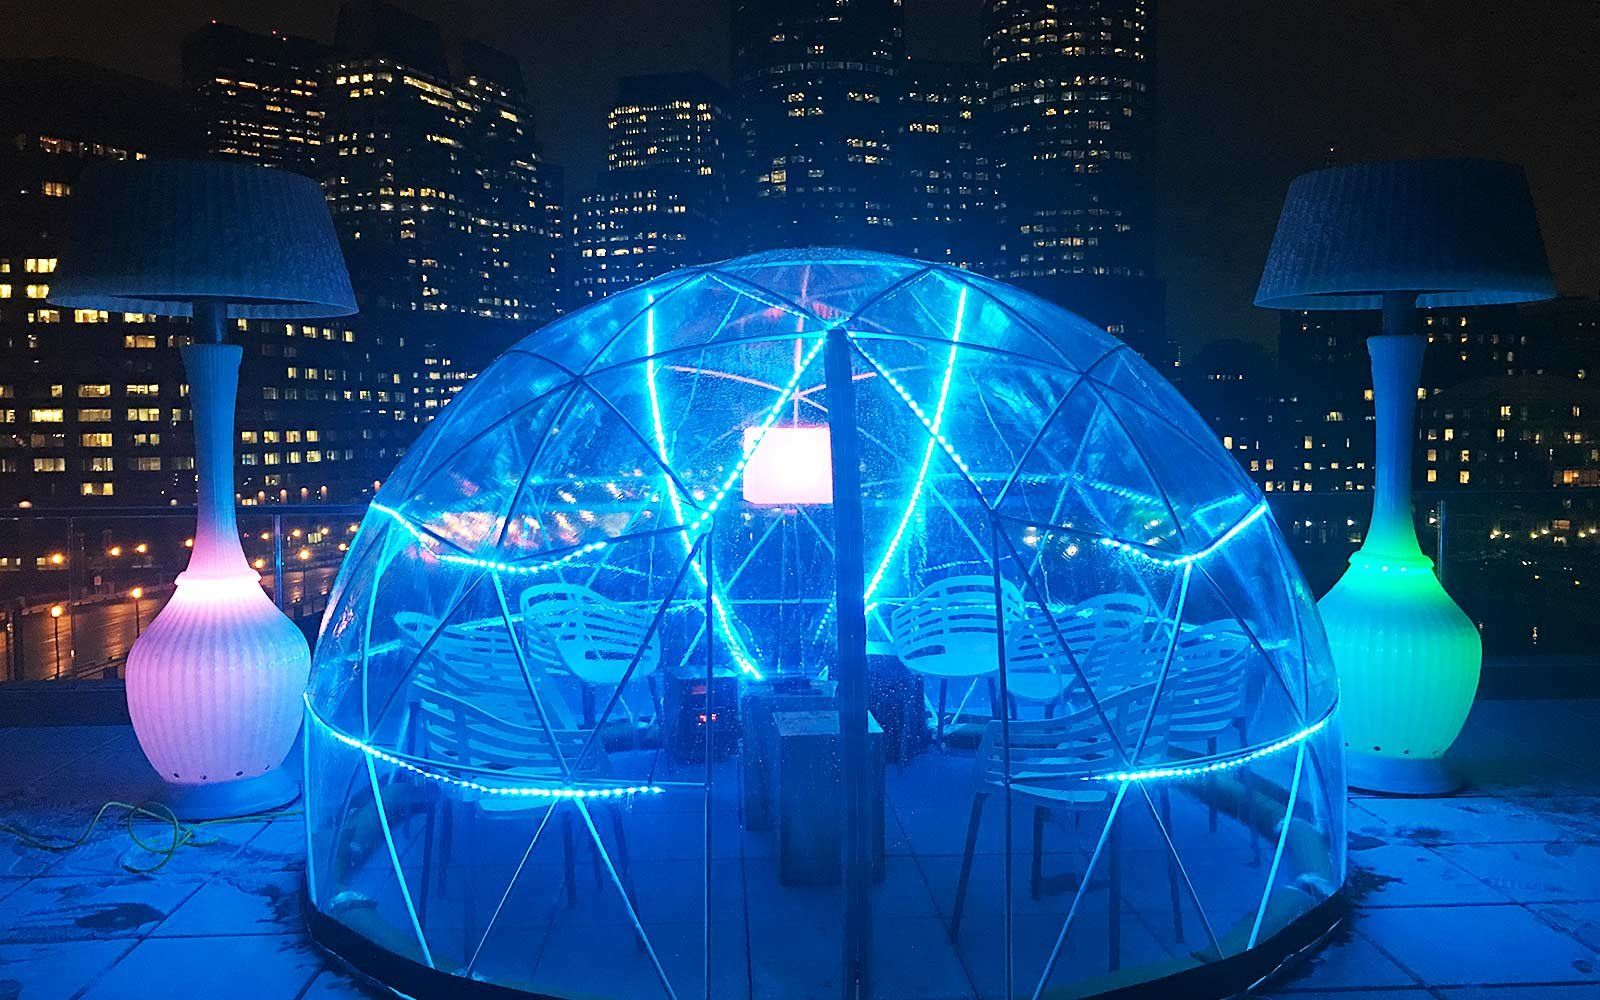 Stay Cozy Boston' Rooftop 'igloo' Bar Travel